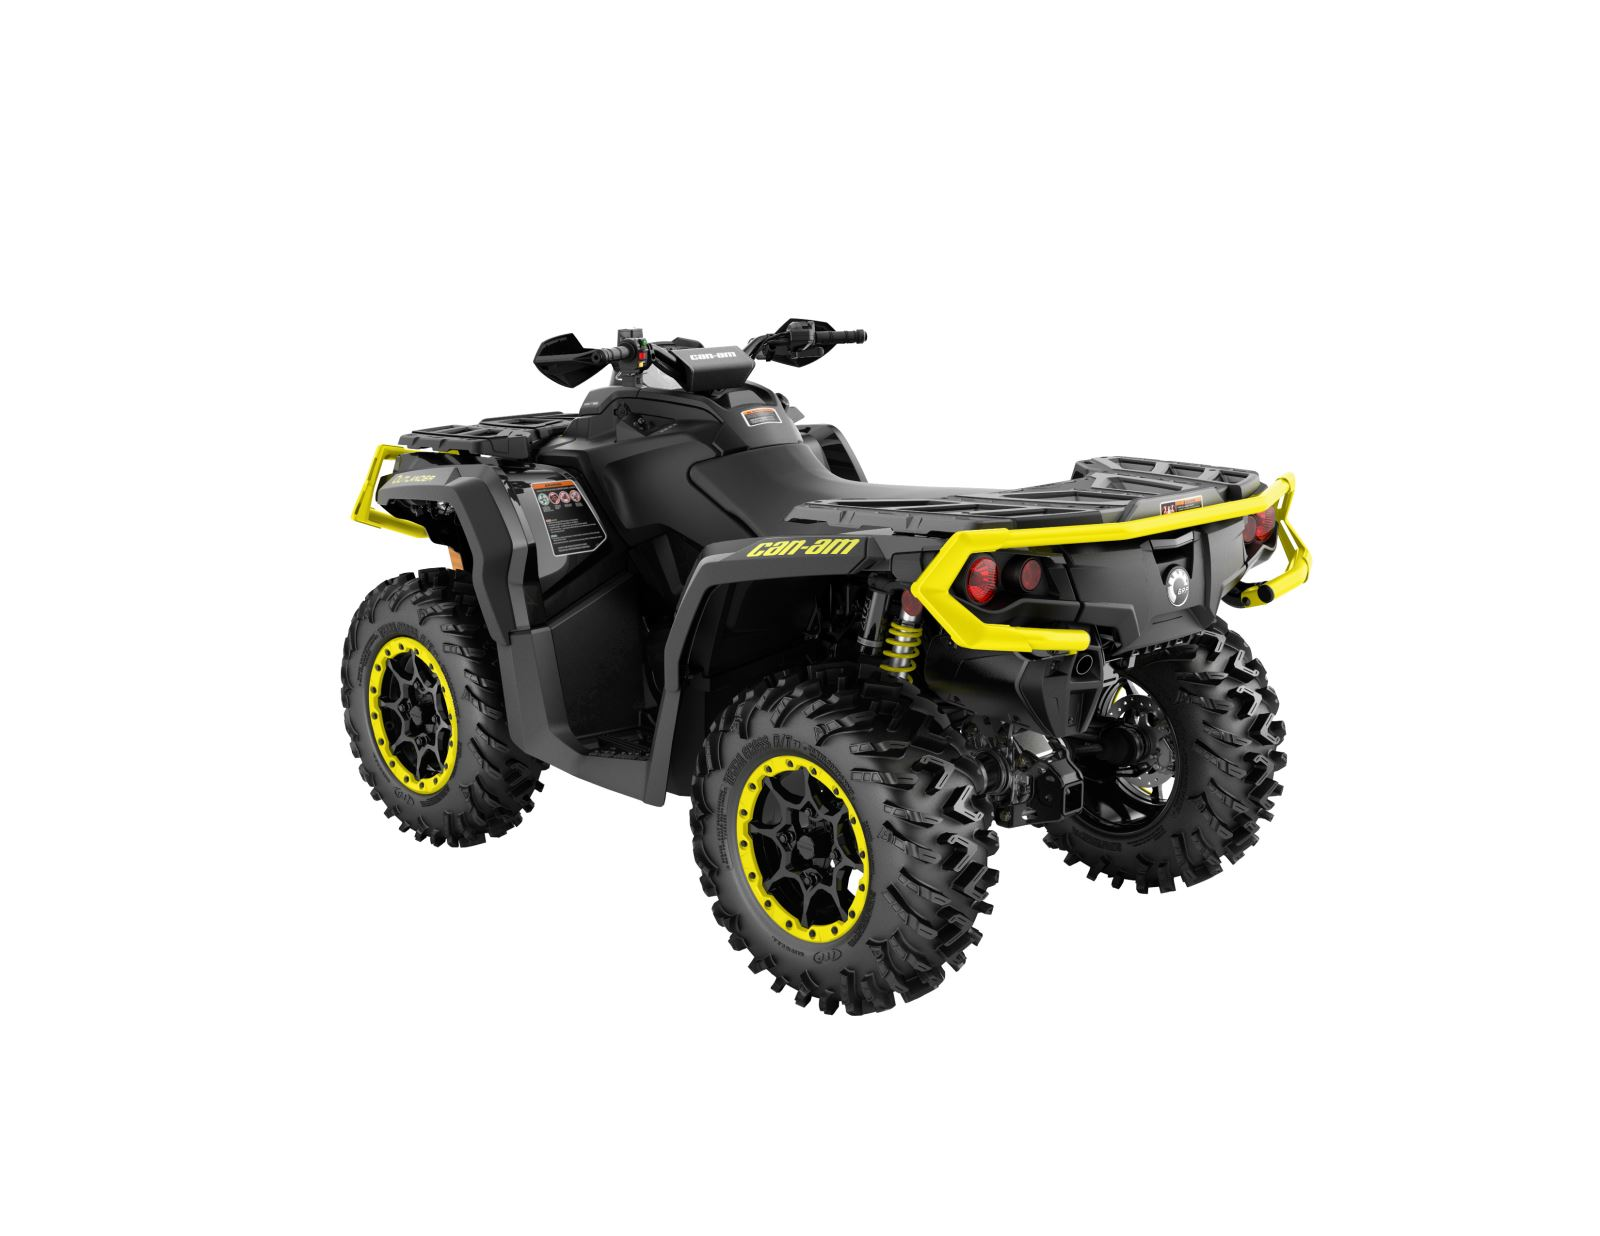 Details On 2019 Can-Am Outlander Family One of the most